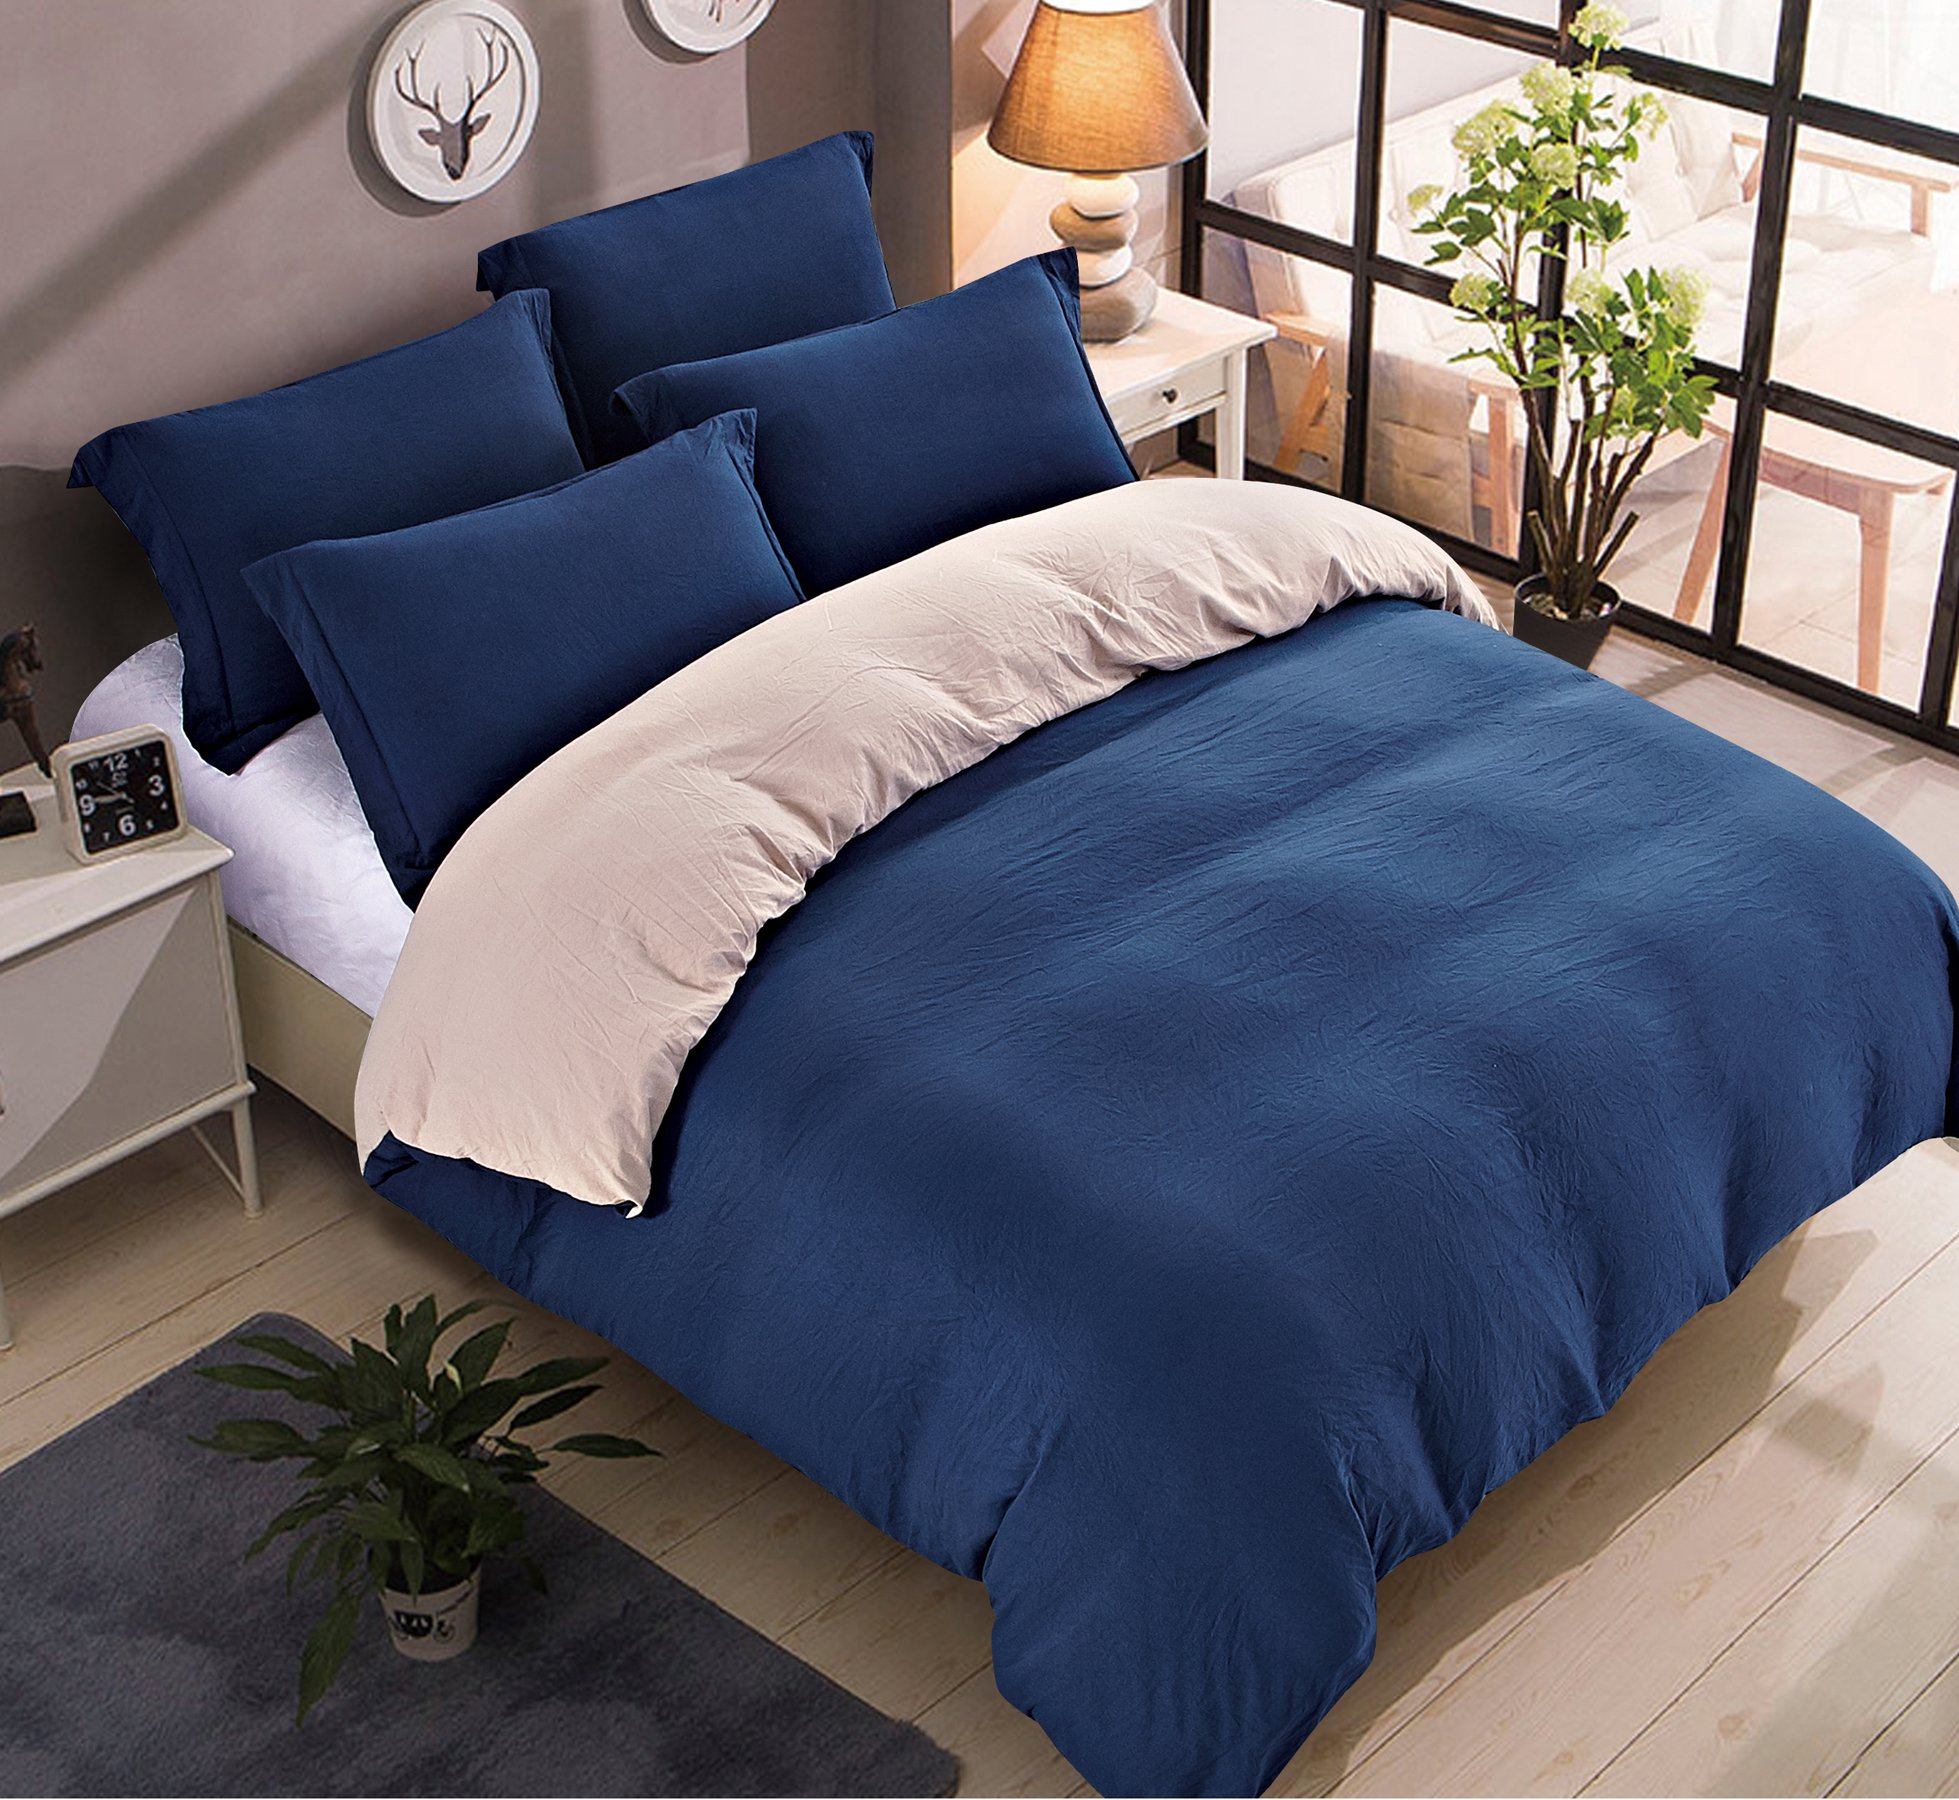 Delbou Tree Ultra Soft Microfiber Duvet Cover Set,Stone-Washed Duvet Cover Set,2 Tone Reversible Quilt Cover,Zipper Closure,Duvet Cover Set Twin in Blue and Beige 68 by 90 inch,CLEARANCE